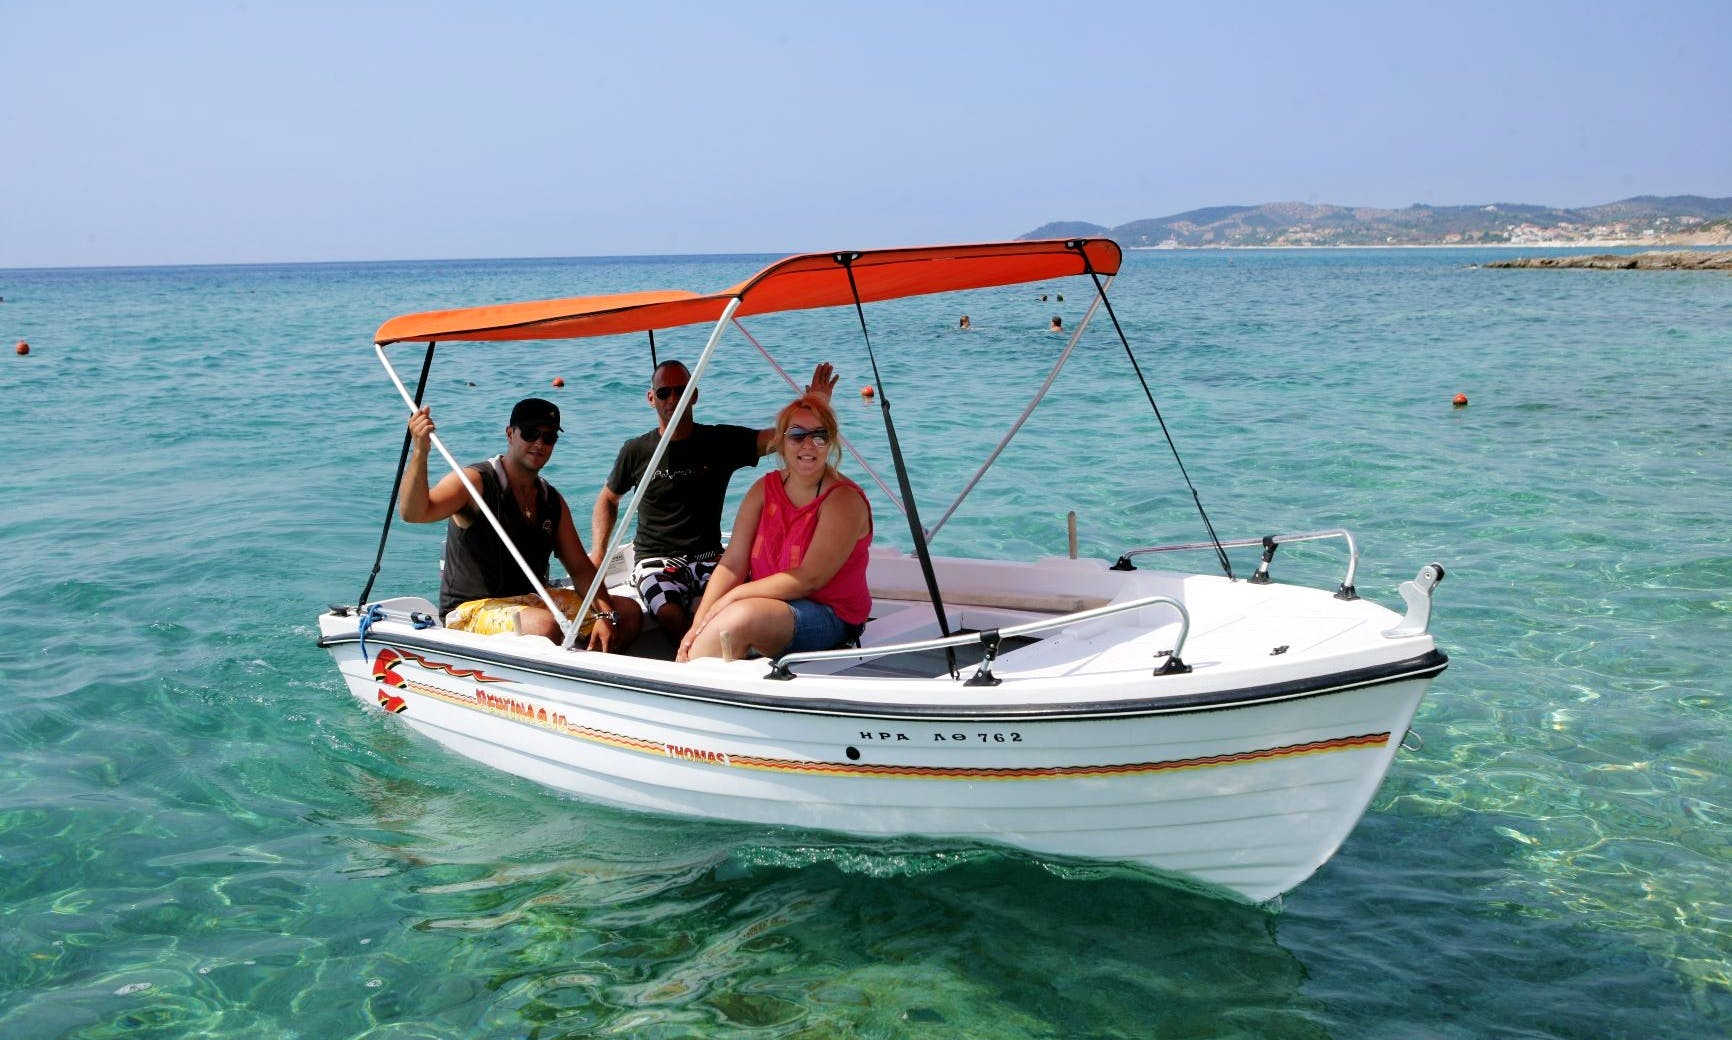 14 ft dinghy rental in Pefkari, Thassos for 4 people